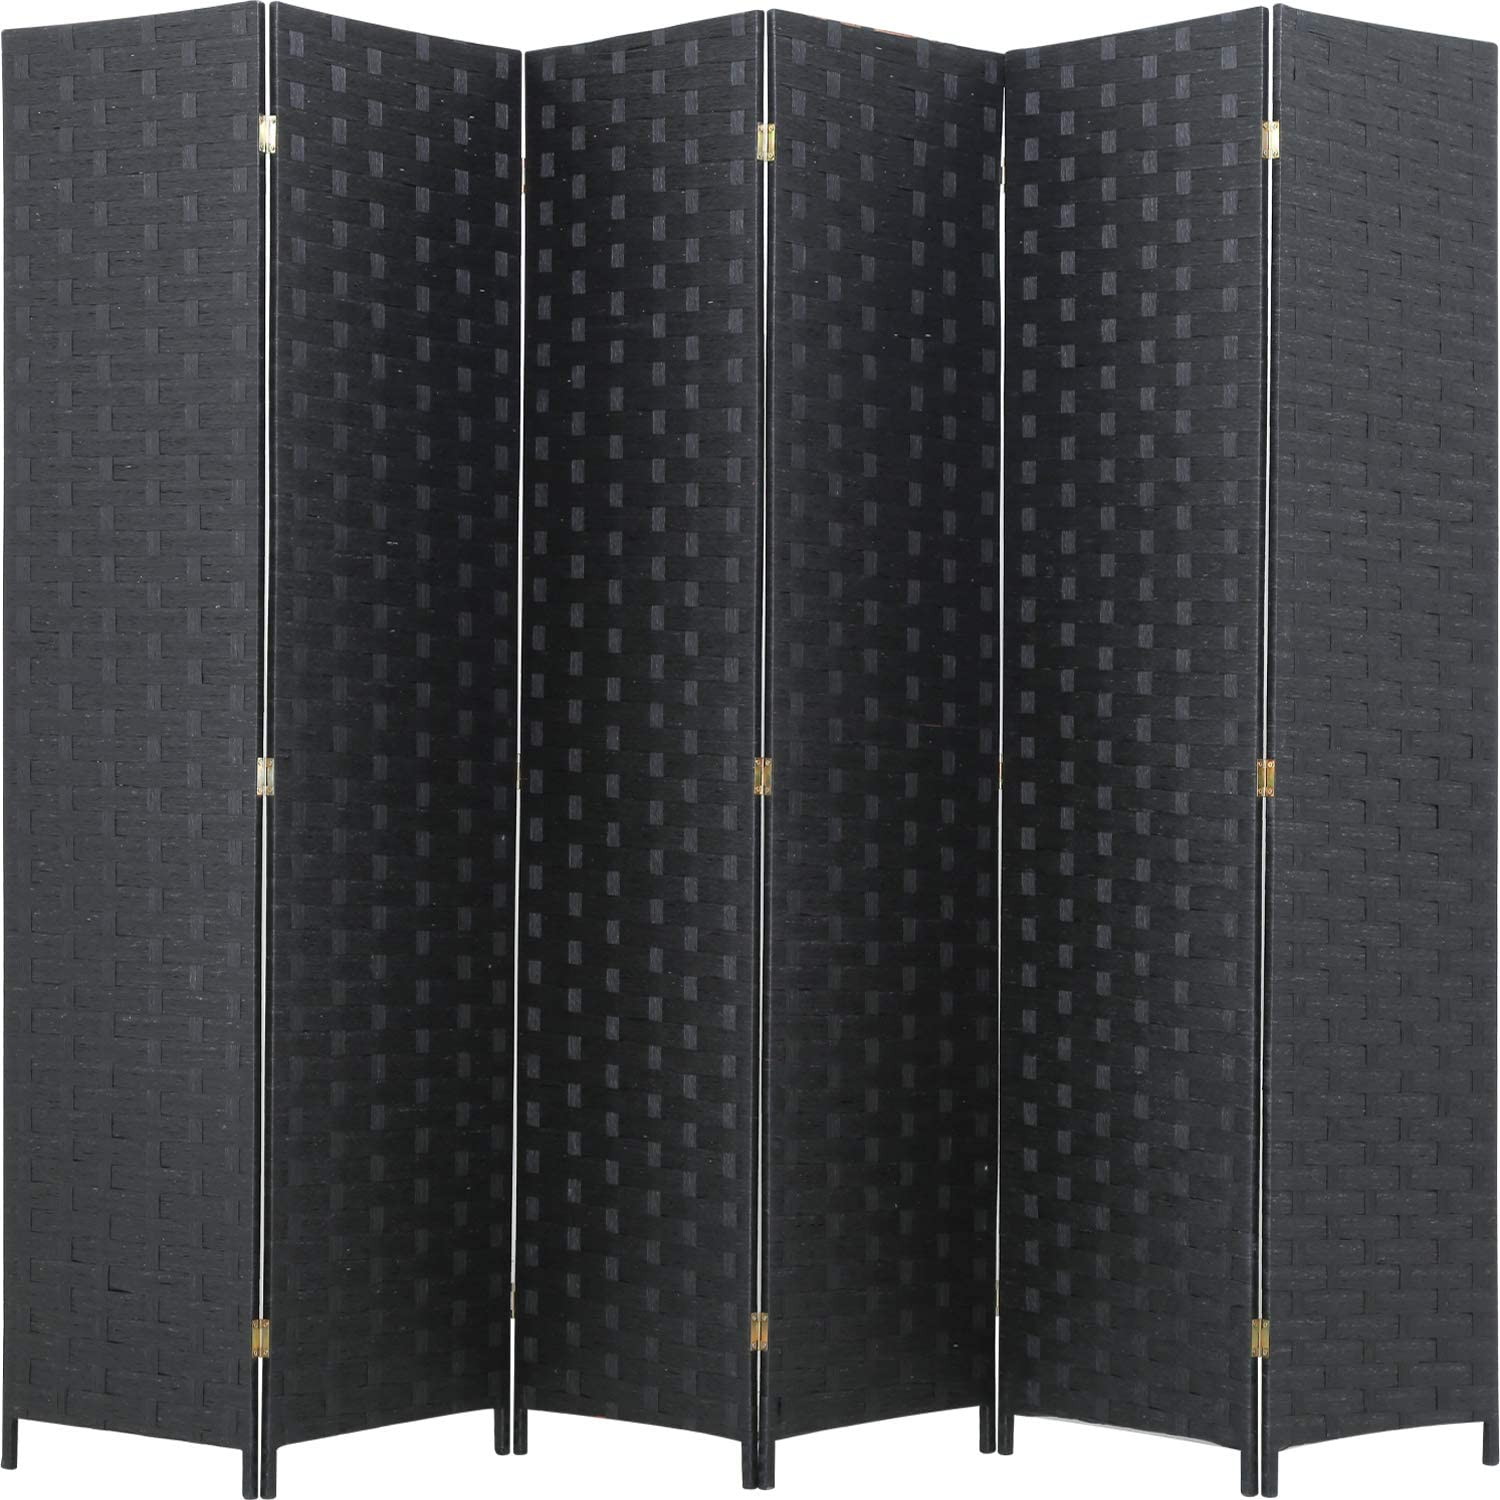 FDW Room Divider Wood Screen 6 Panel Folding Portable Partition Screen Wood Mesh Woven Design Room Screen Divider Screen Wood for Home Office (Black)